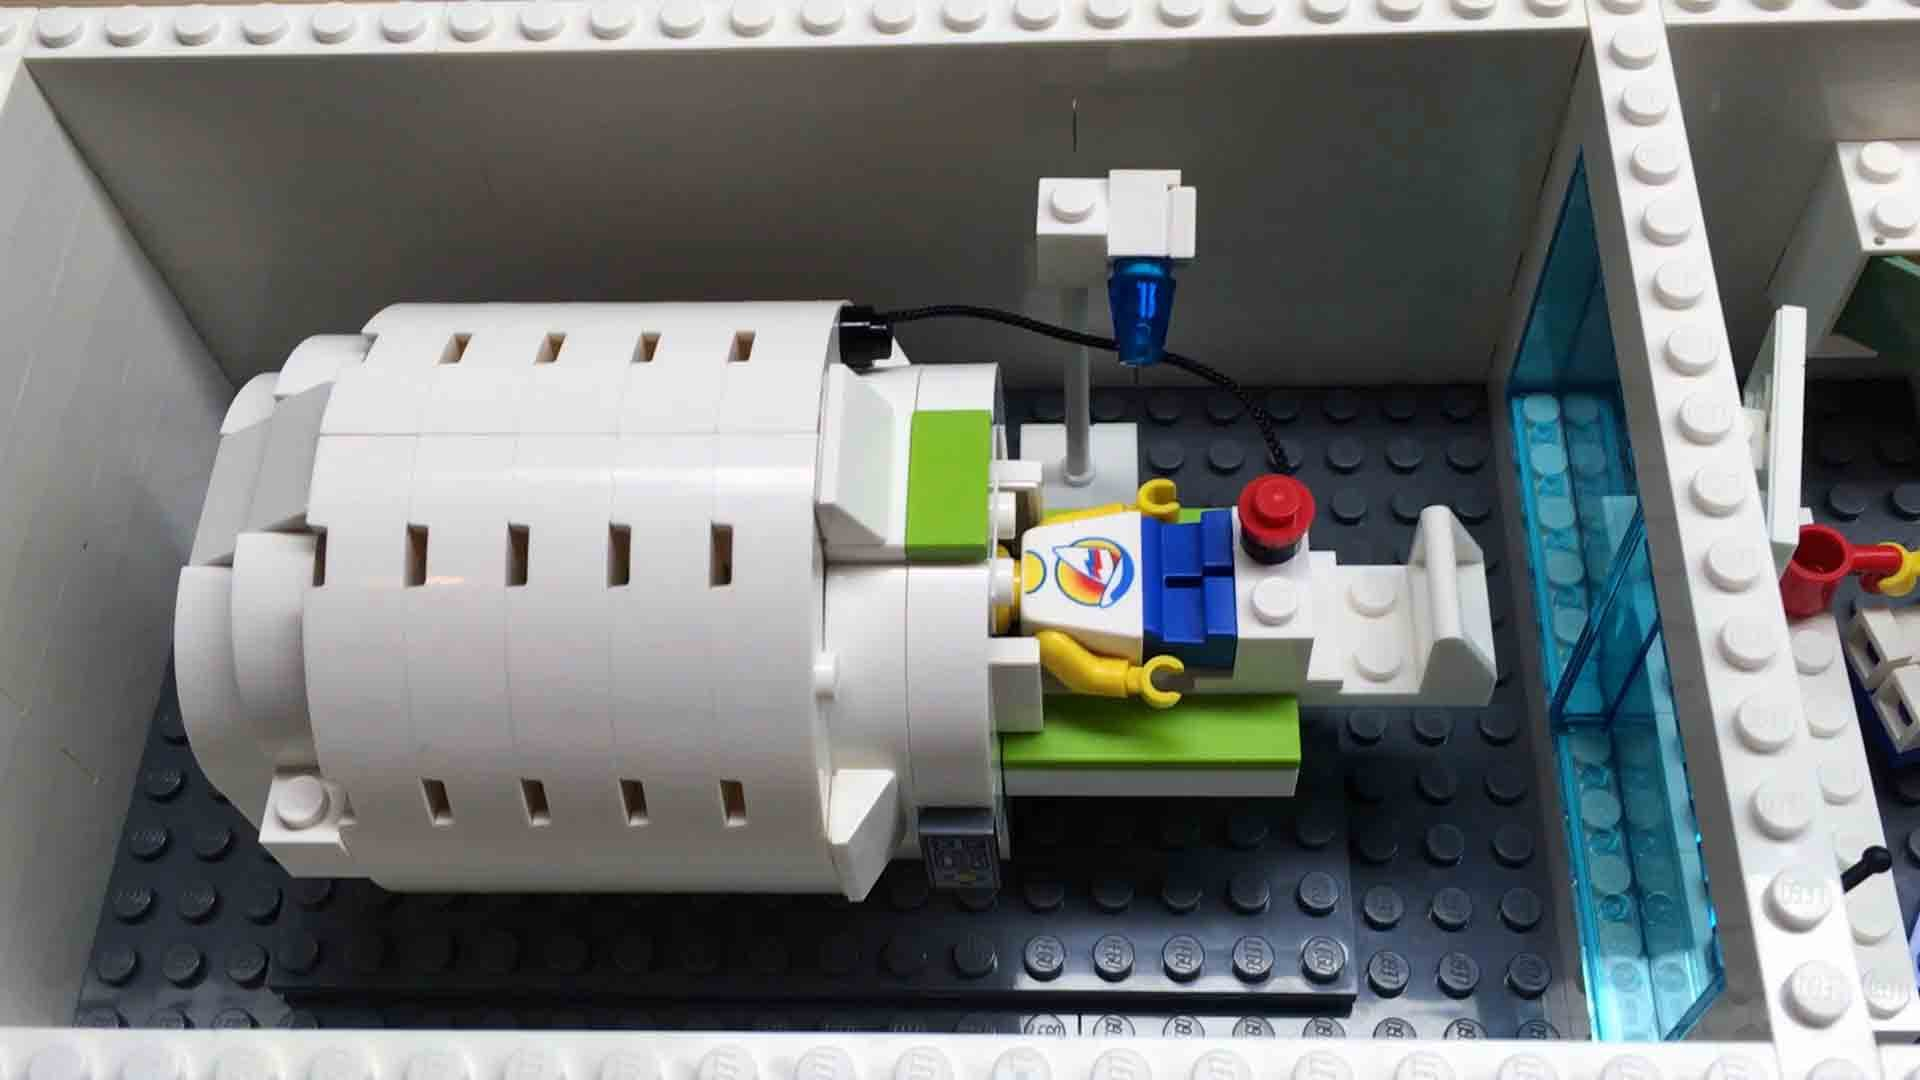 MRI - Lego Version - How many Teslas?